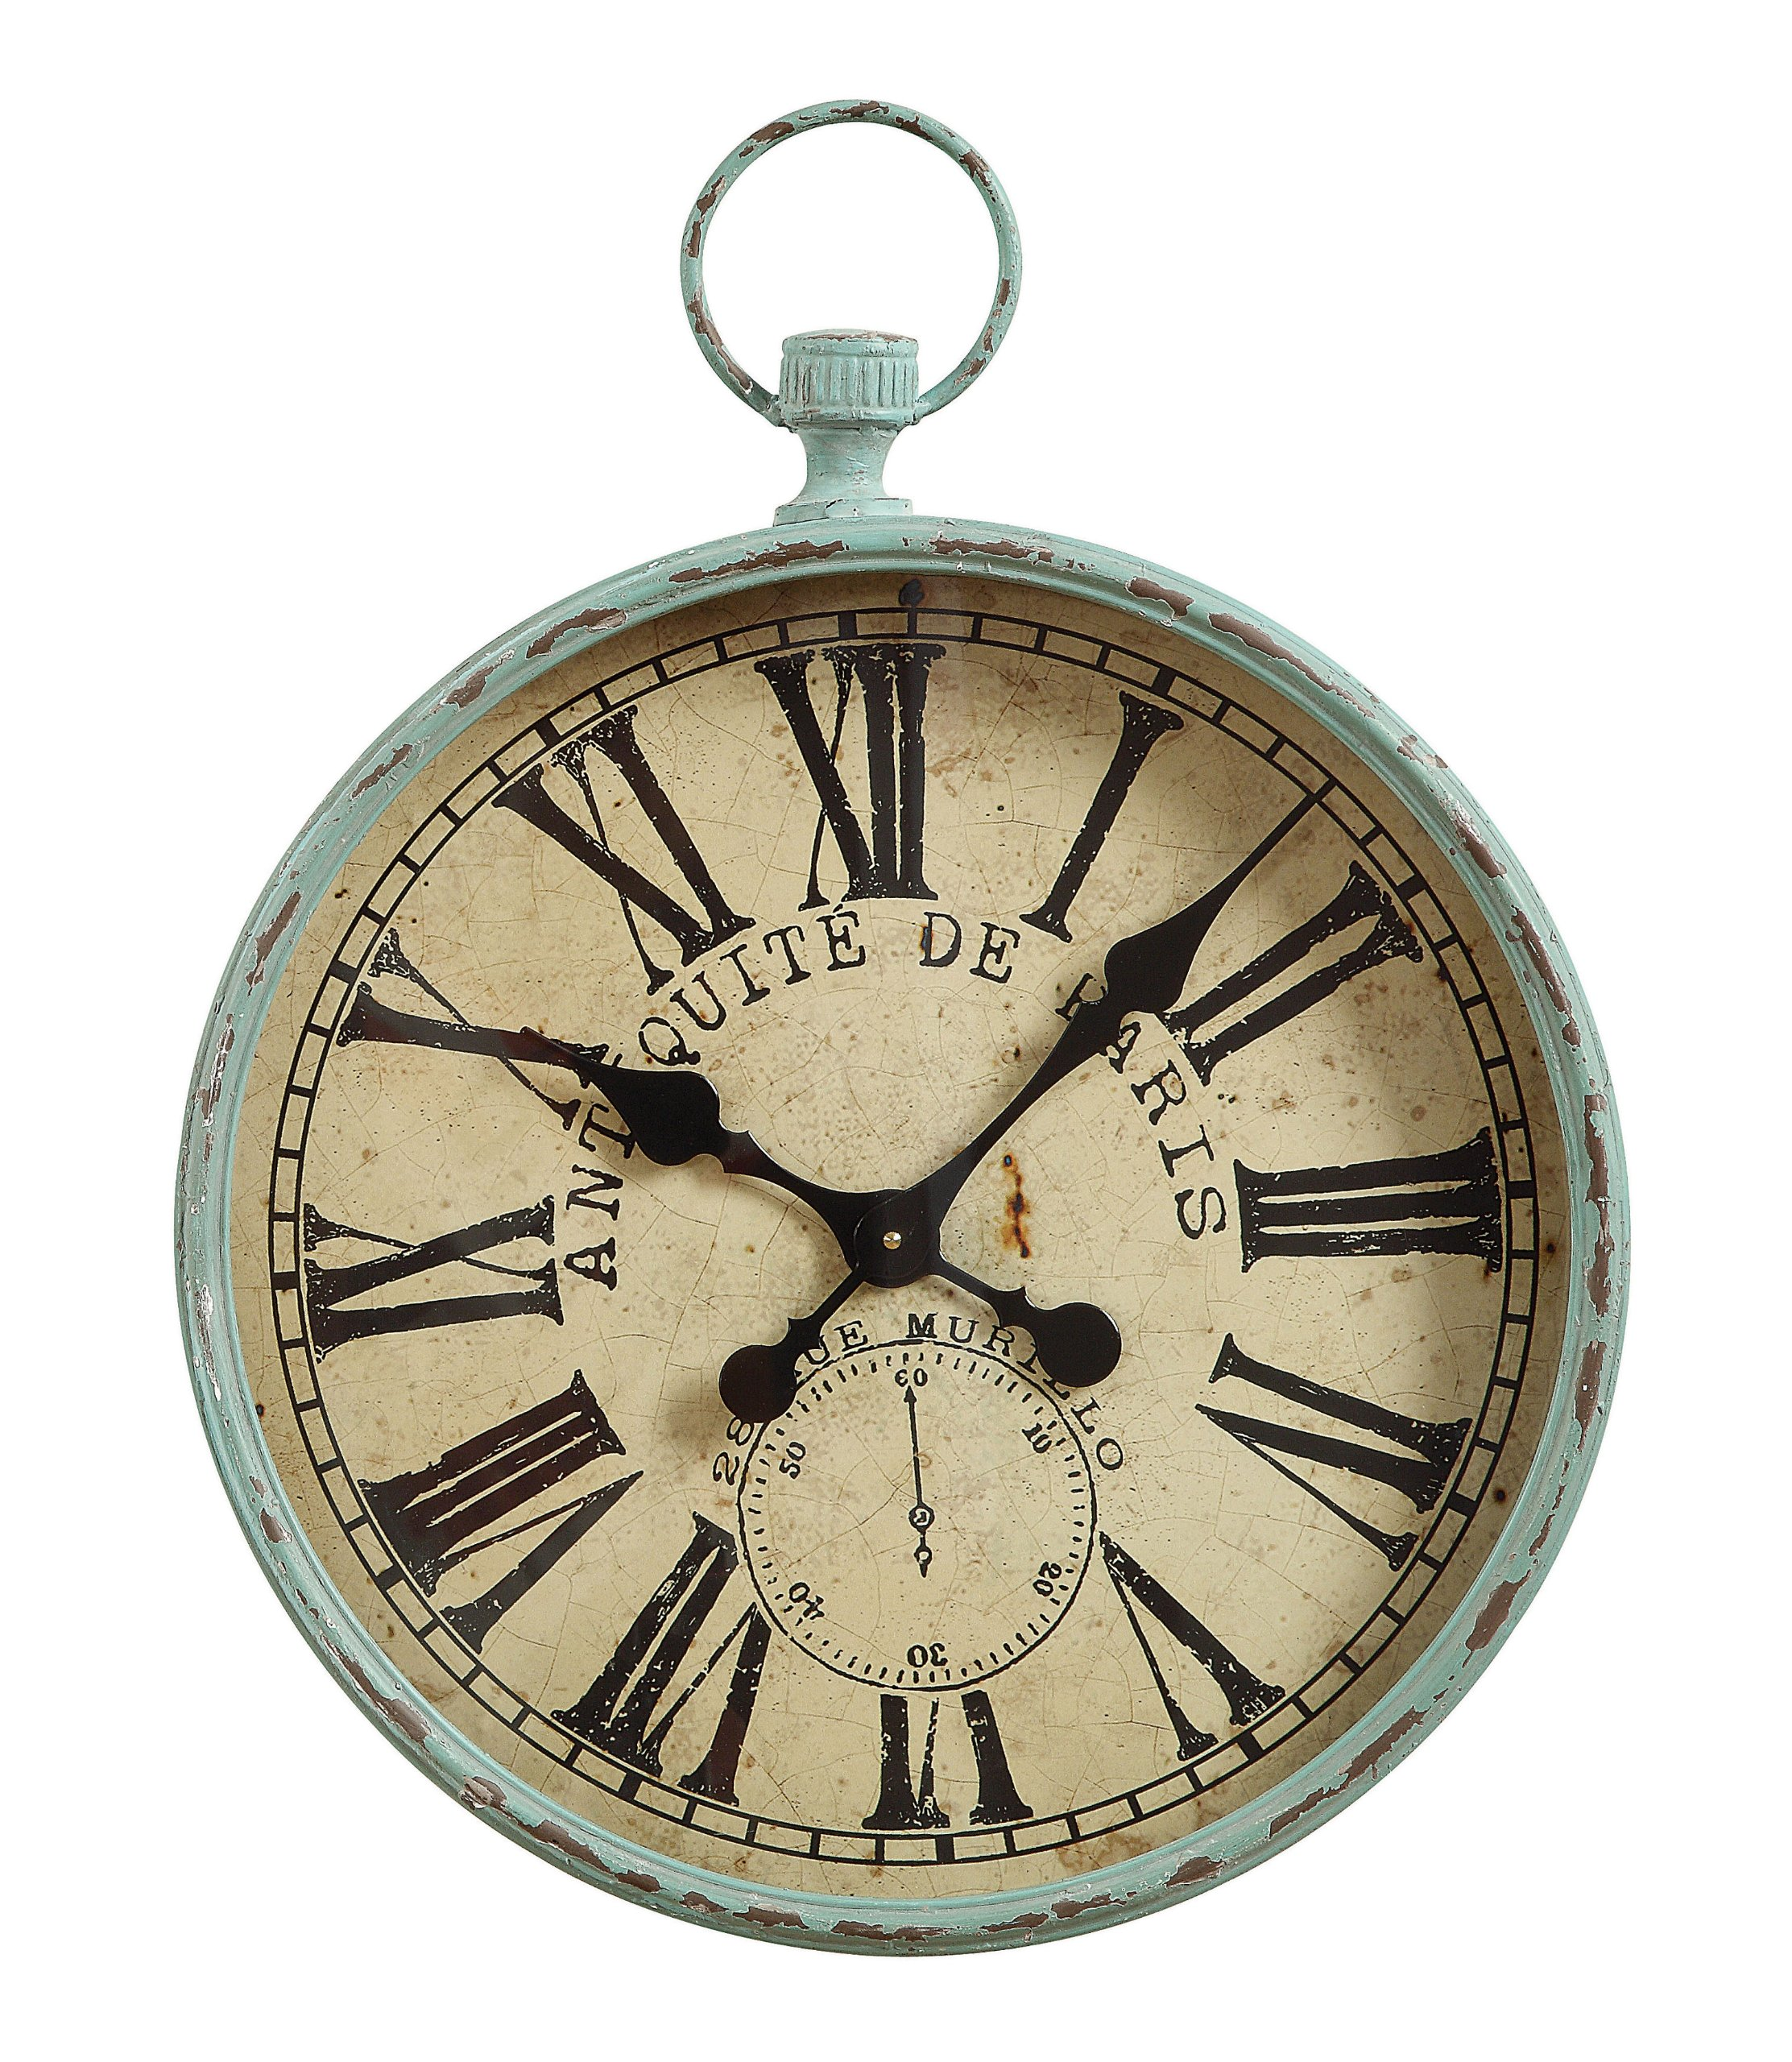 Creative Co-op Metal Antiquite De Paris Pocket Watch Wall Clock - From the Farmer's Daughter collection Requires 2 AA Batteries, not included 19.1 x 3.1 x 24.6 inches - wall-clocks, living-room-decor, living-room - 91ofJSFJw4L -